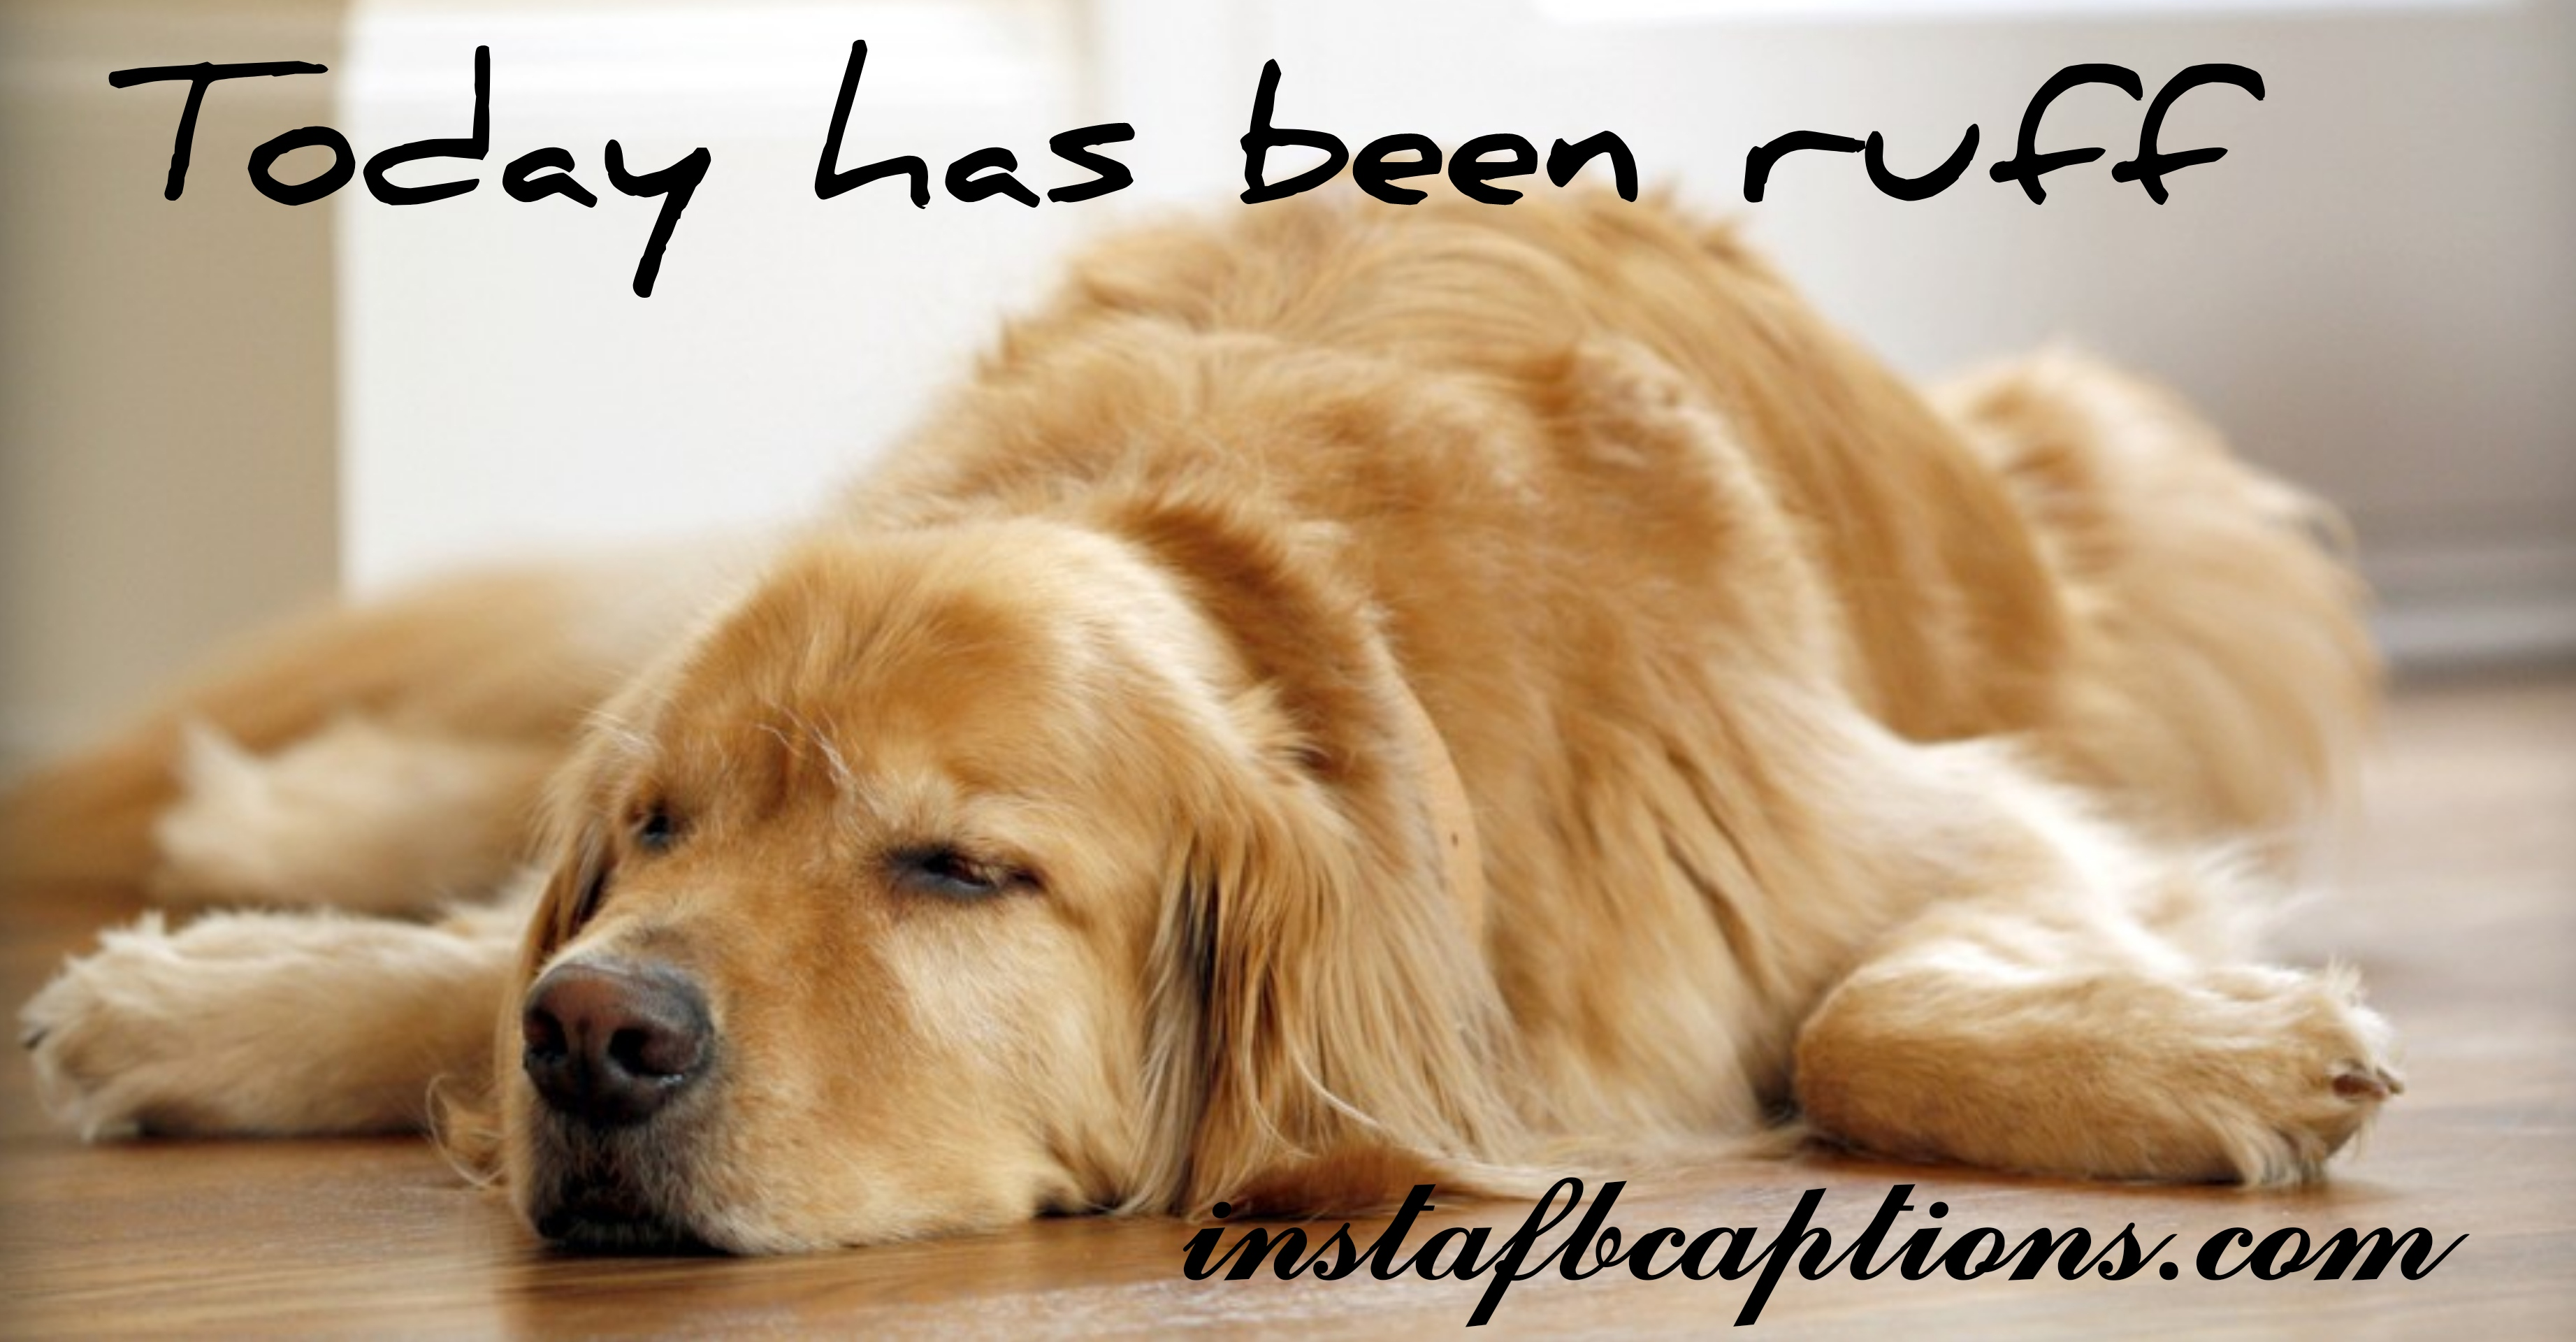 Sleeping Dog Captions  - Sleeping Dog Captions - 150+ DOGS & PUPPY Instagram Captions for Dog Lovers 2021